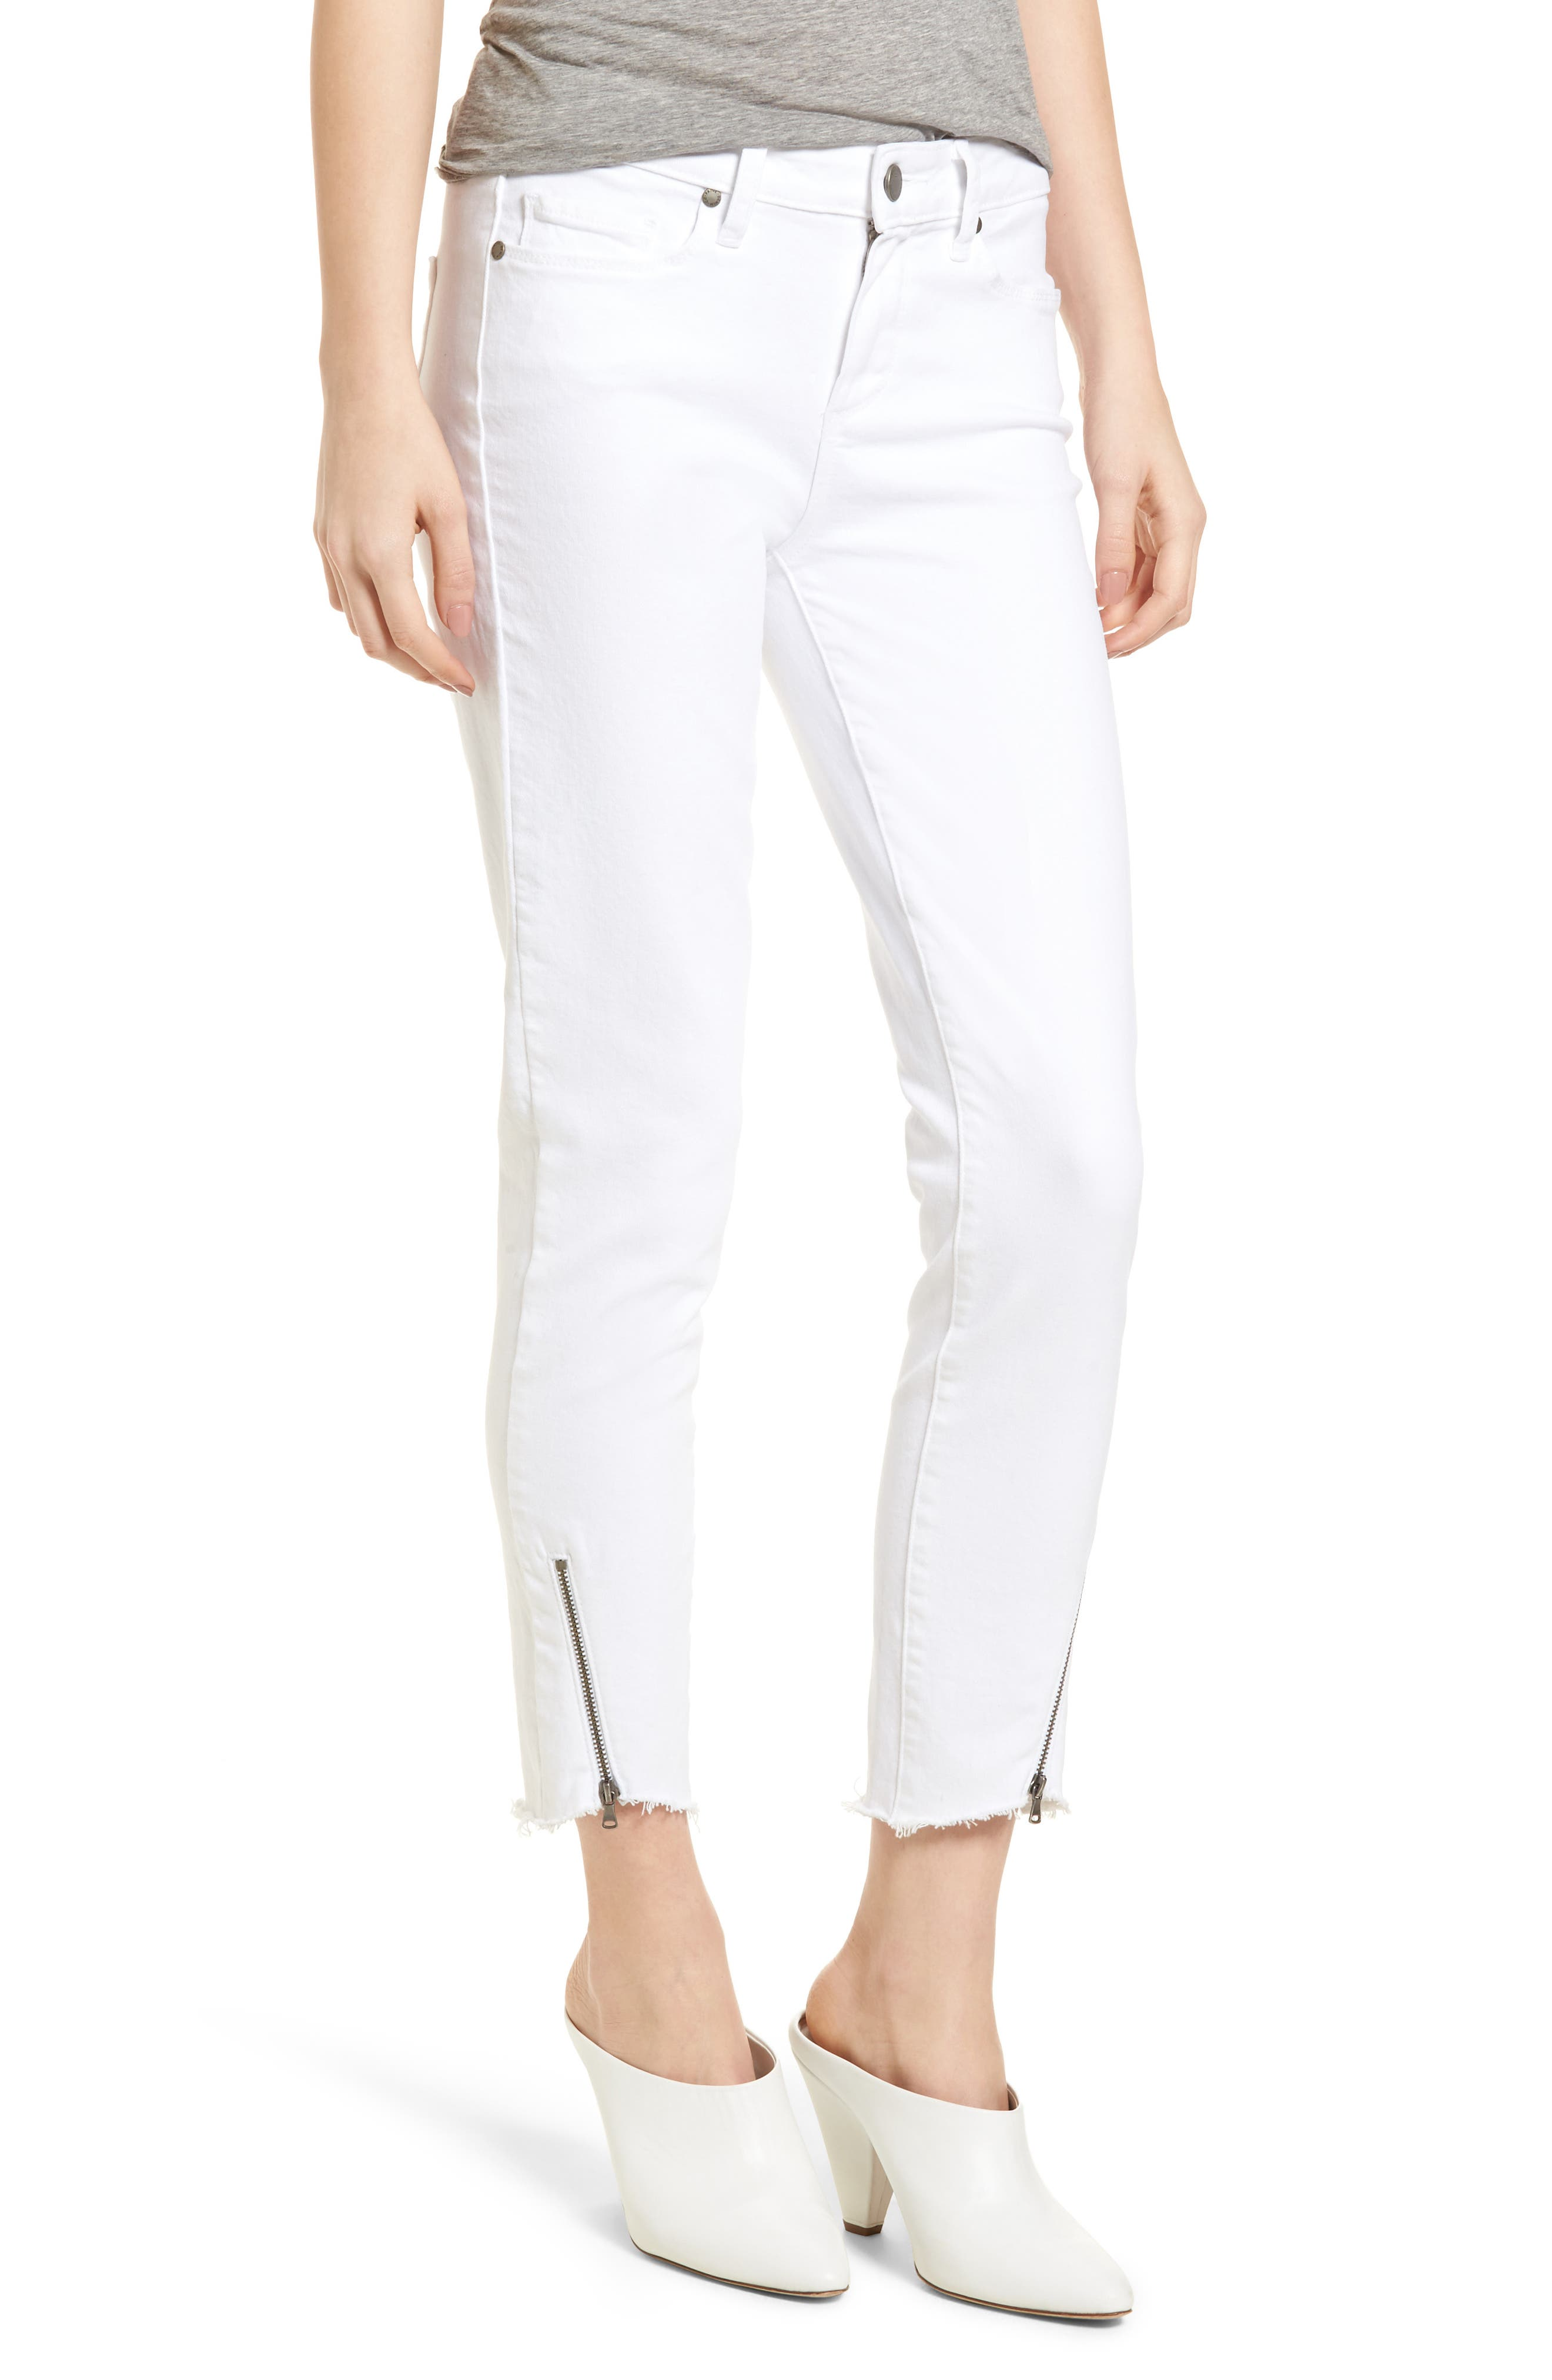 Verdugo Crop Ultra Skinny Jeans,                         Main,                         color, 100